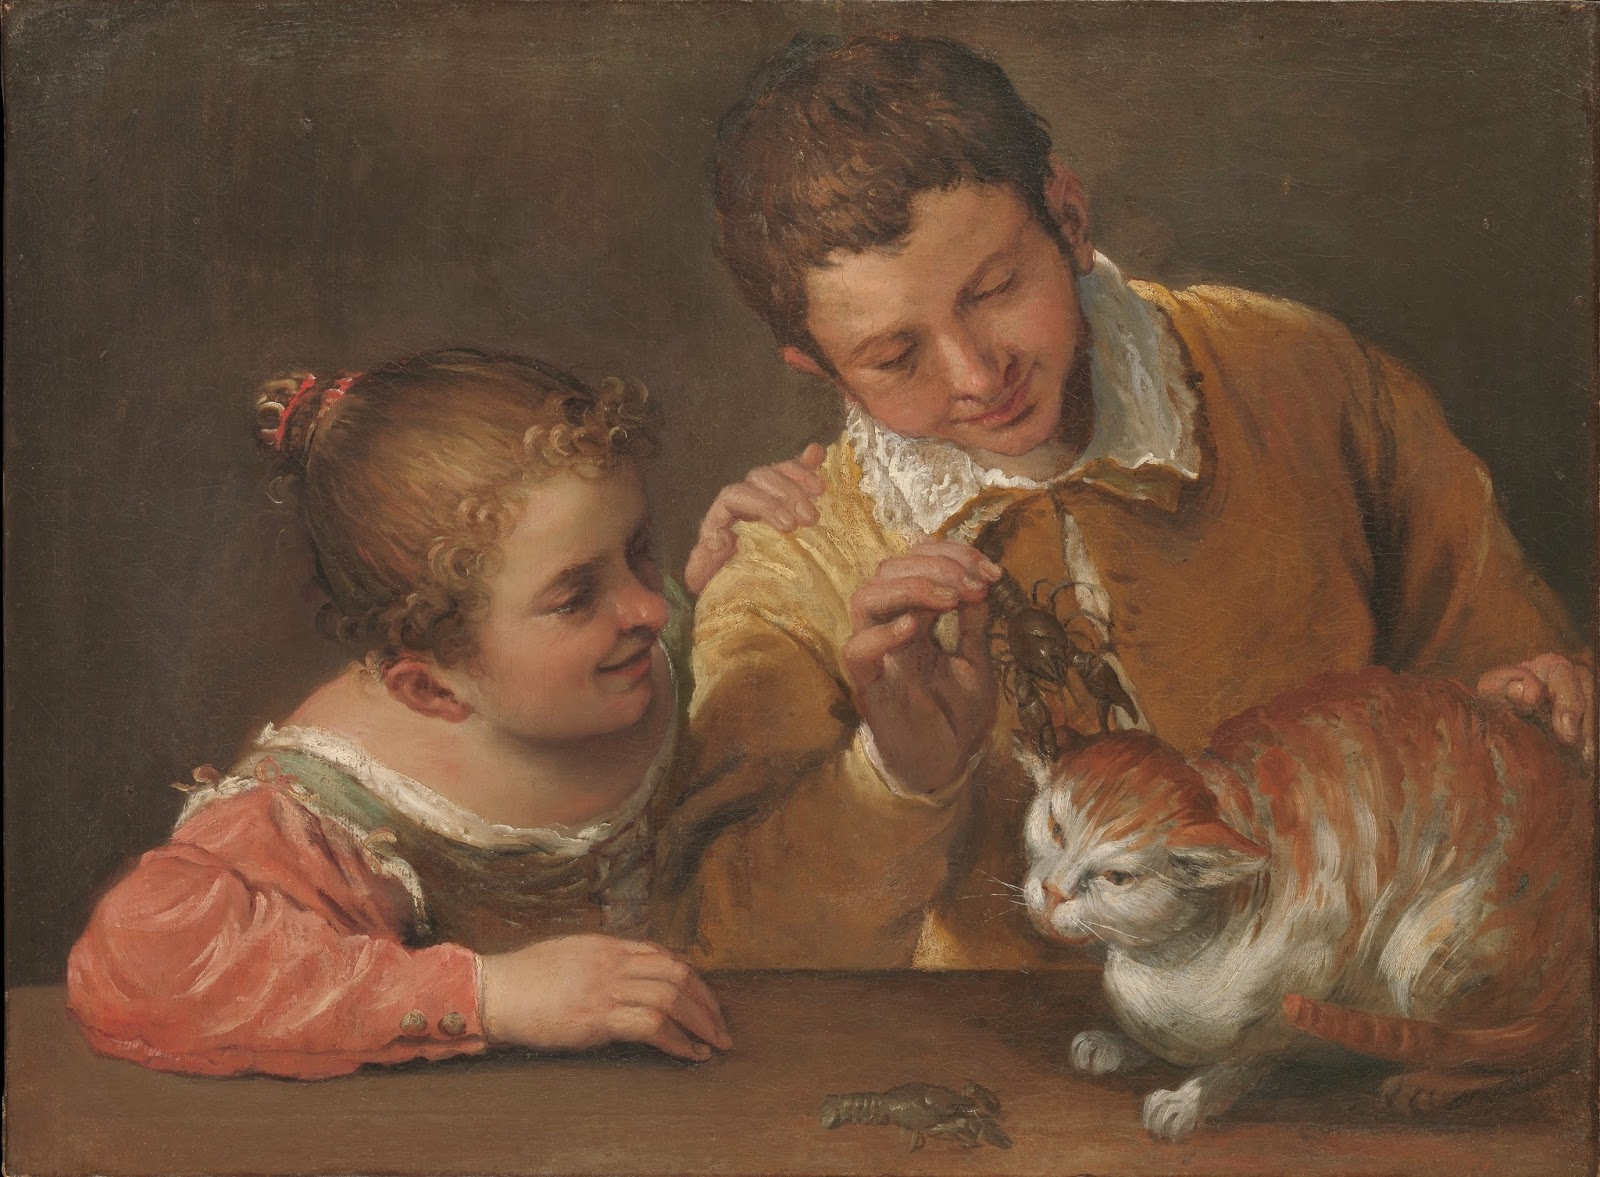 Annibale Carracci S Painting Two Children Teasing Cat